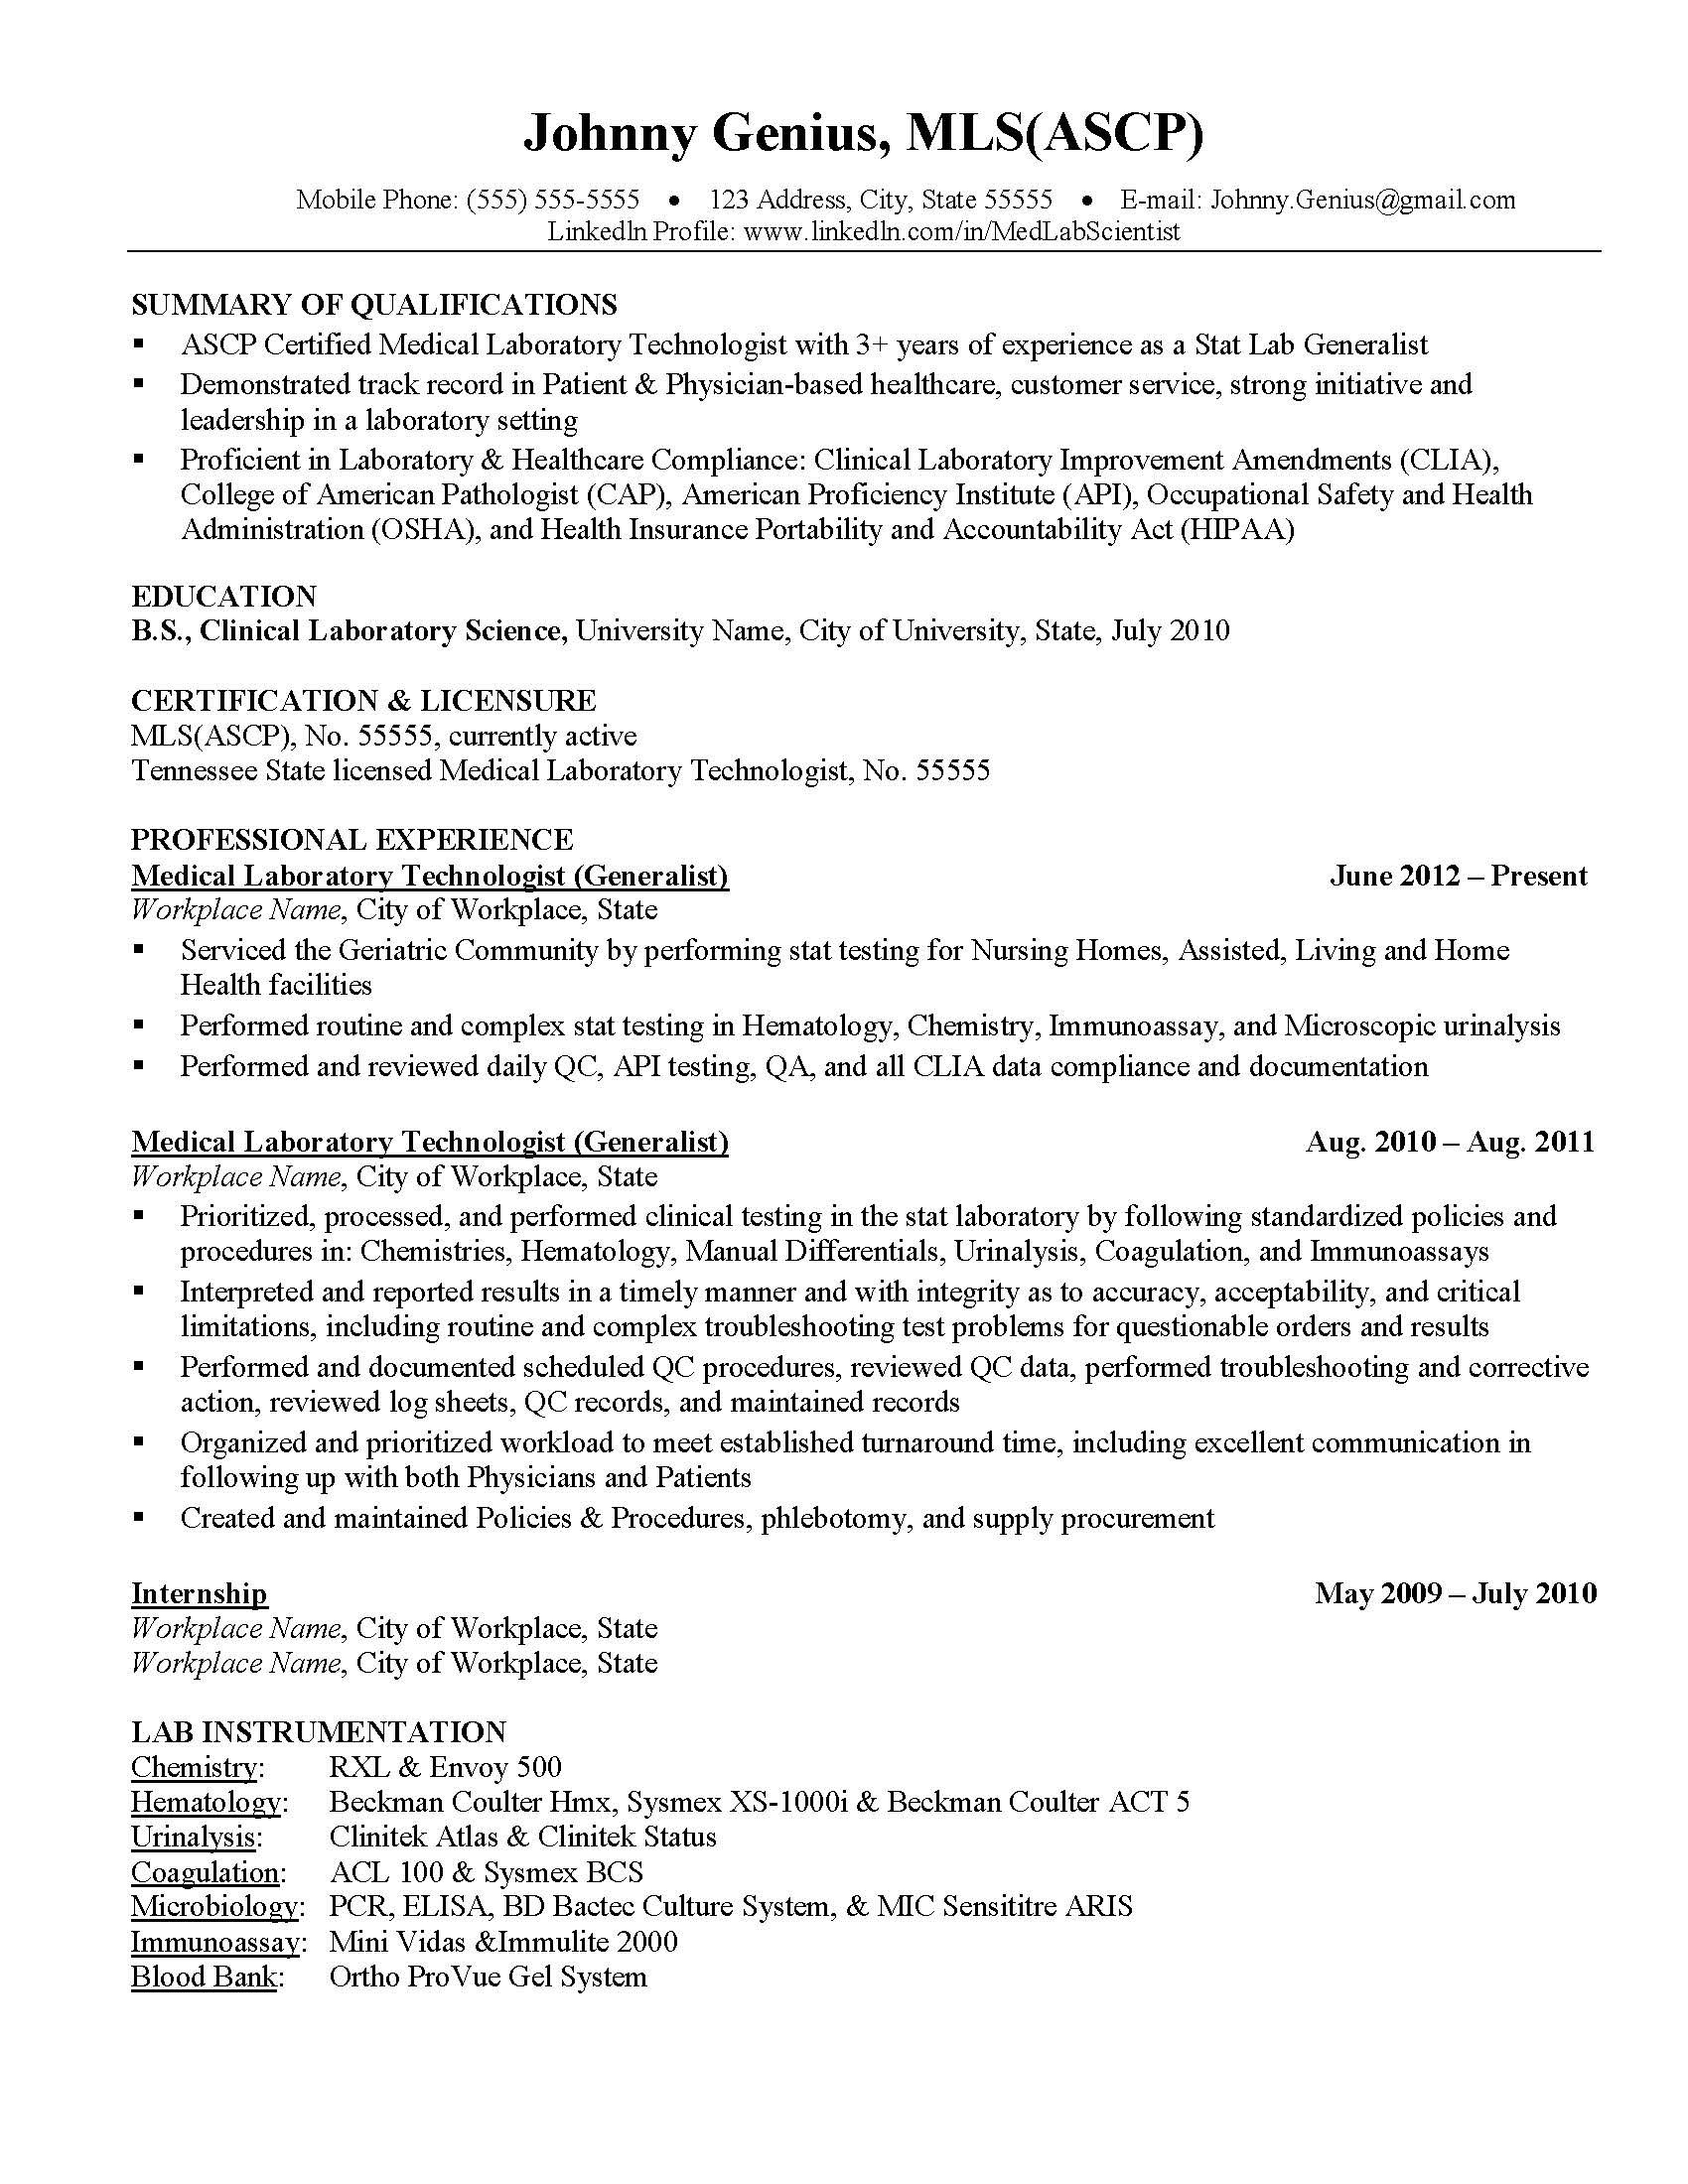 Technician Resume Page Not Found Error Ever Feel Like You The Wrong Place